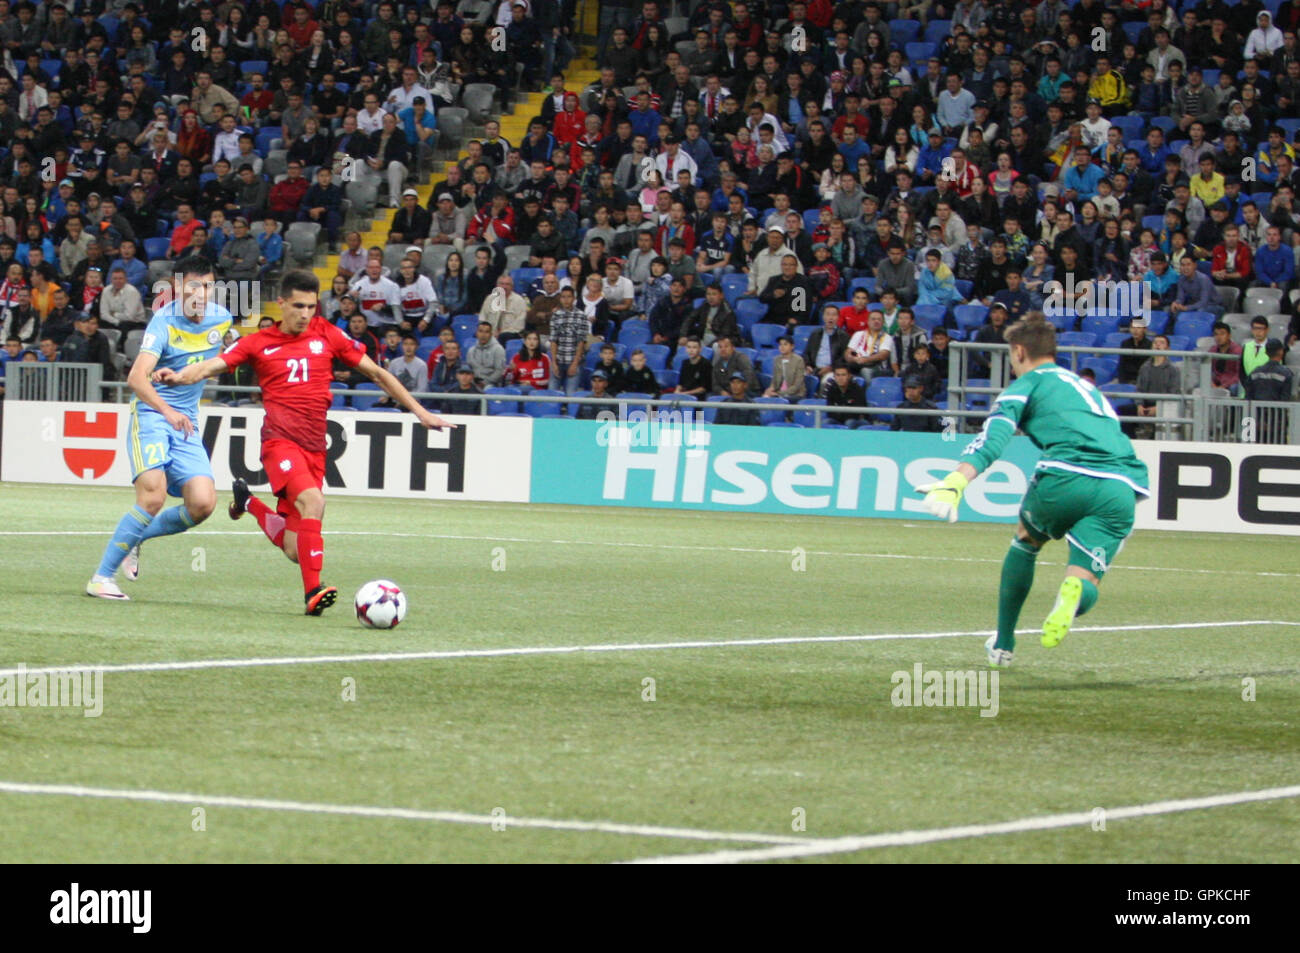 Astana, Kazakhstan. 4th September, 2016. Bartosz Kapustka (POL) scores for Poland. Kazakhstan versus Poland, FIFA World Cup 2018 qualifier. The game ended in a 2-2 draw Credit:  Action Plus Sports Images/Alamy Live News Stock Photo